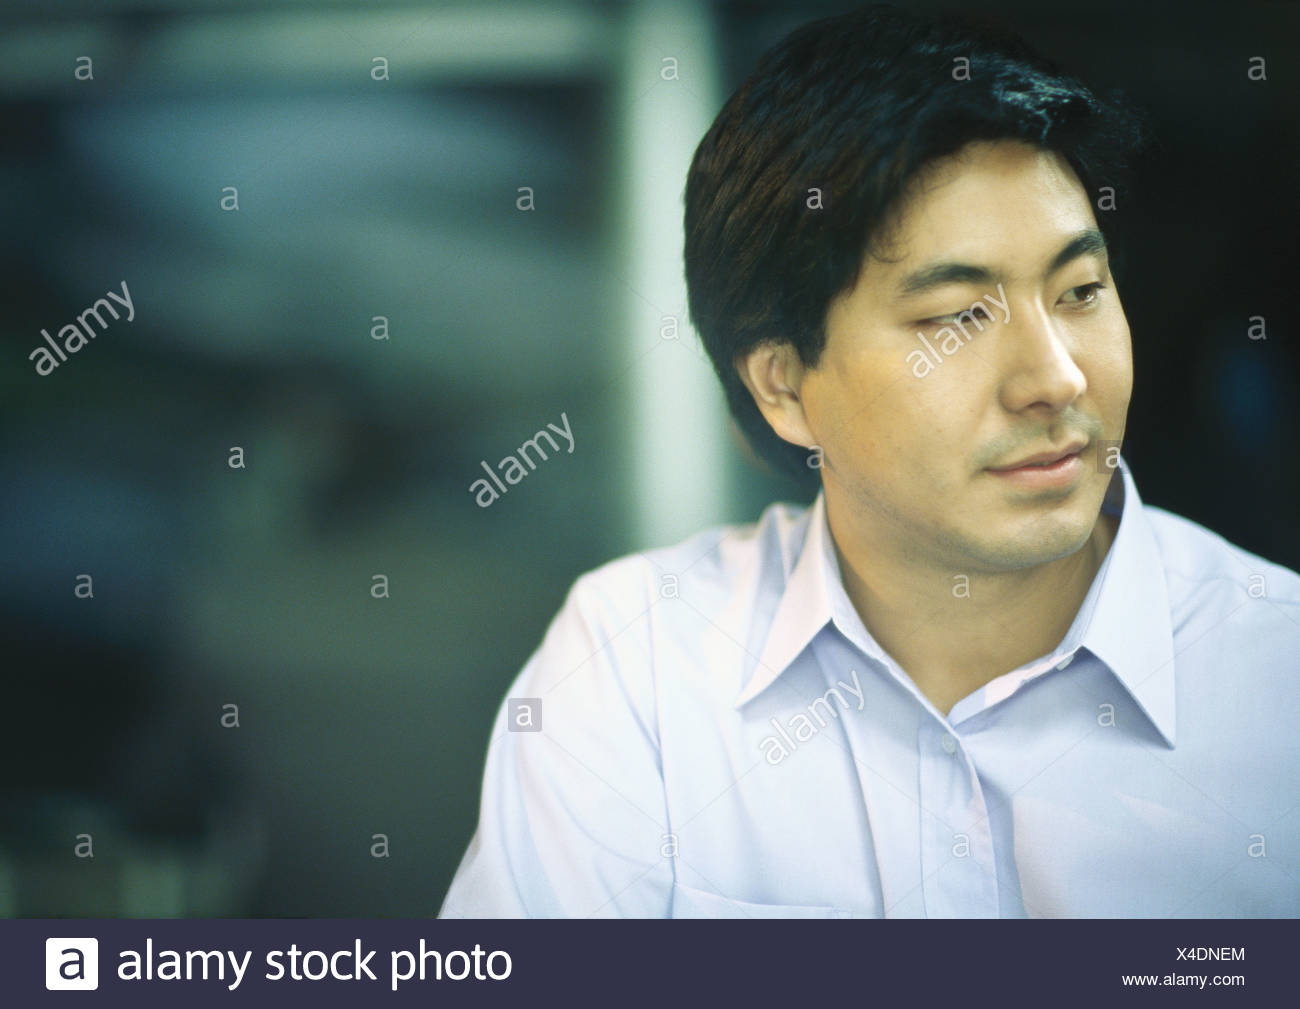 Man in button down shirt - Stock Image